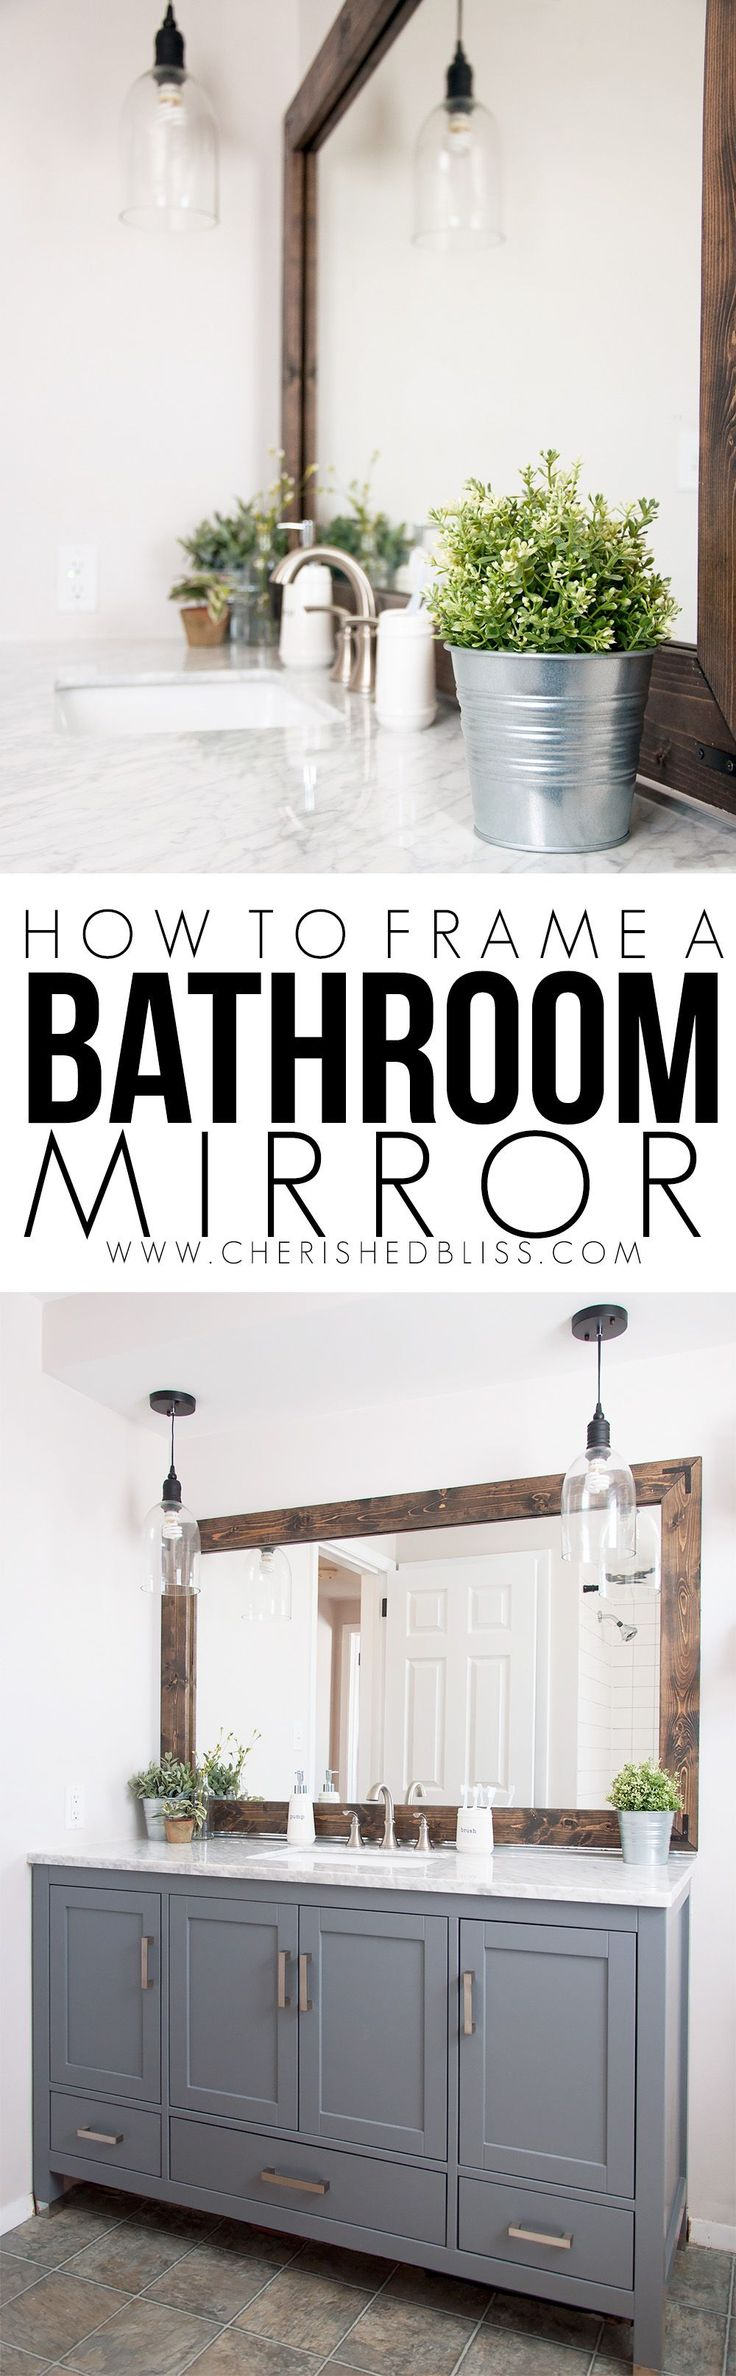 Framed bathroom mirrors ideas - Frame Bathroom Mirrors